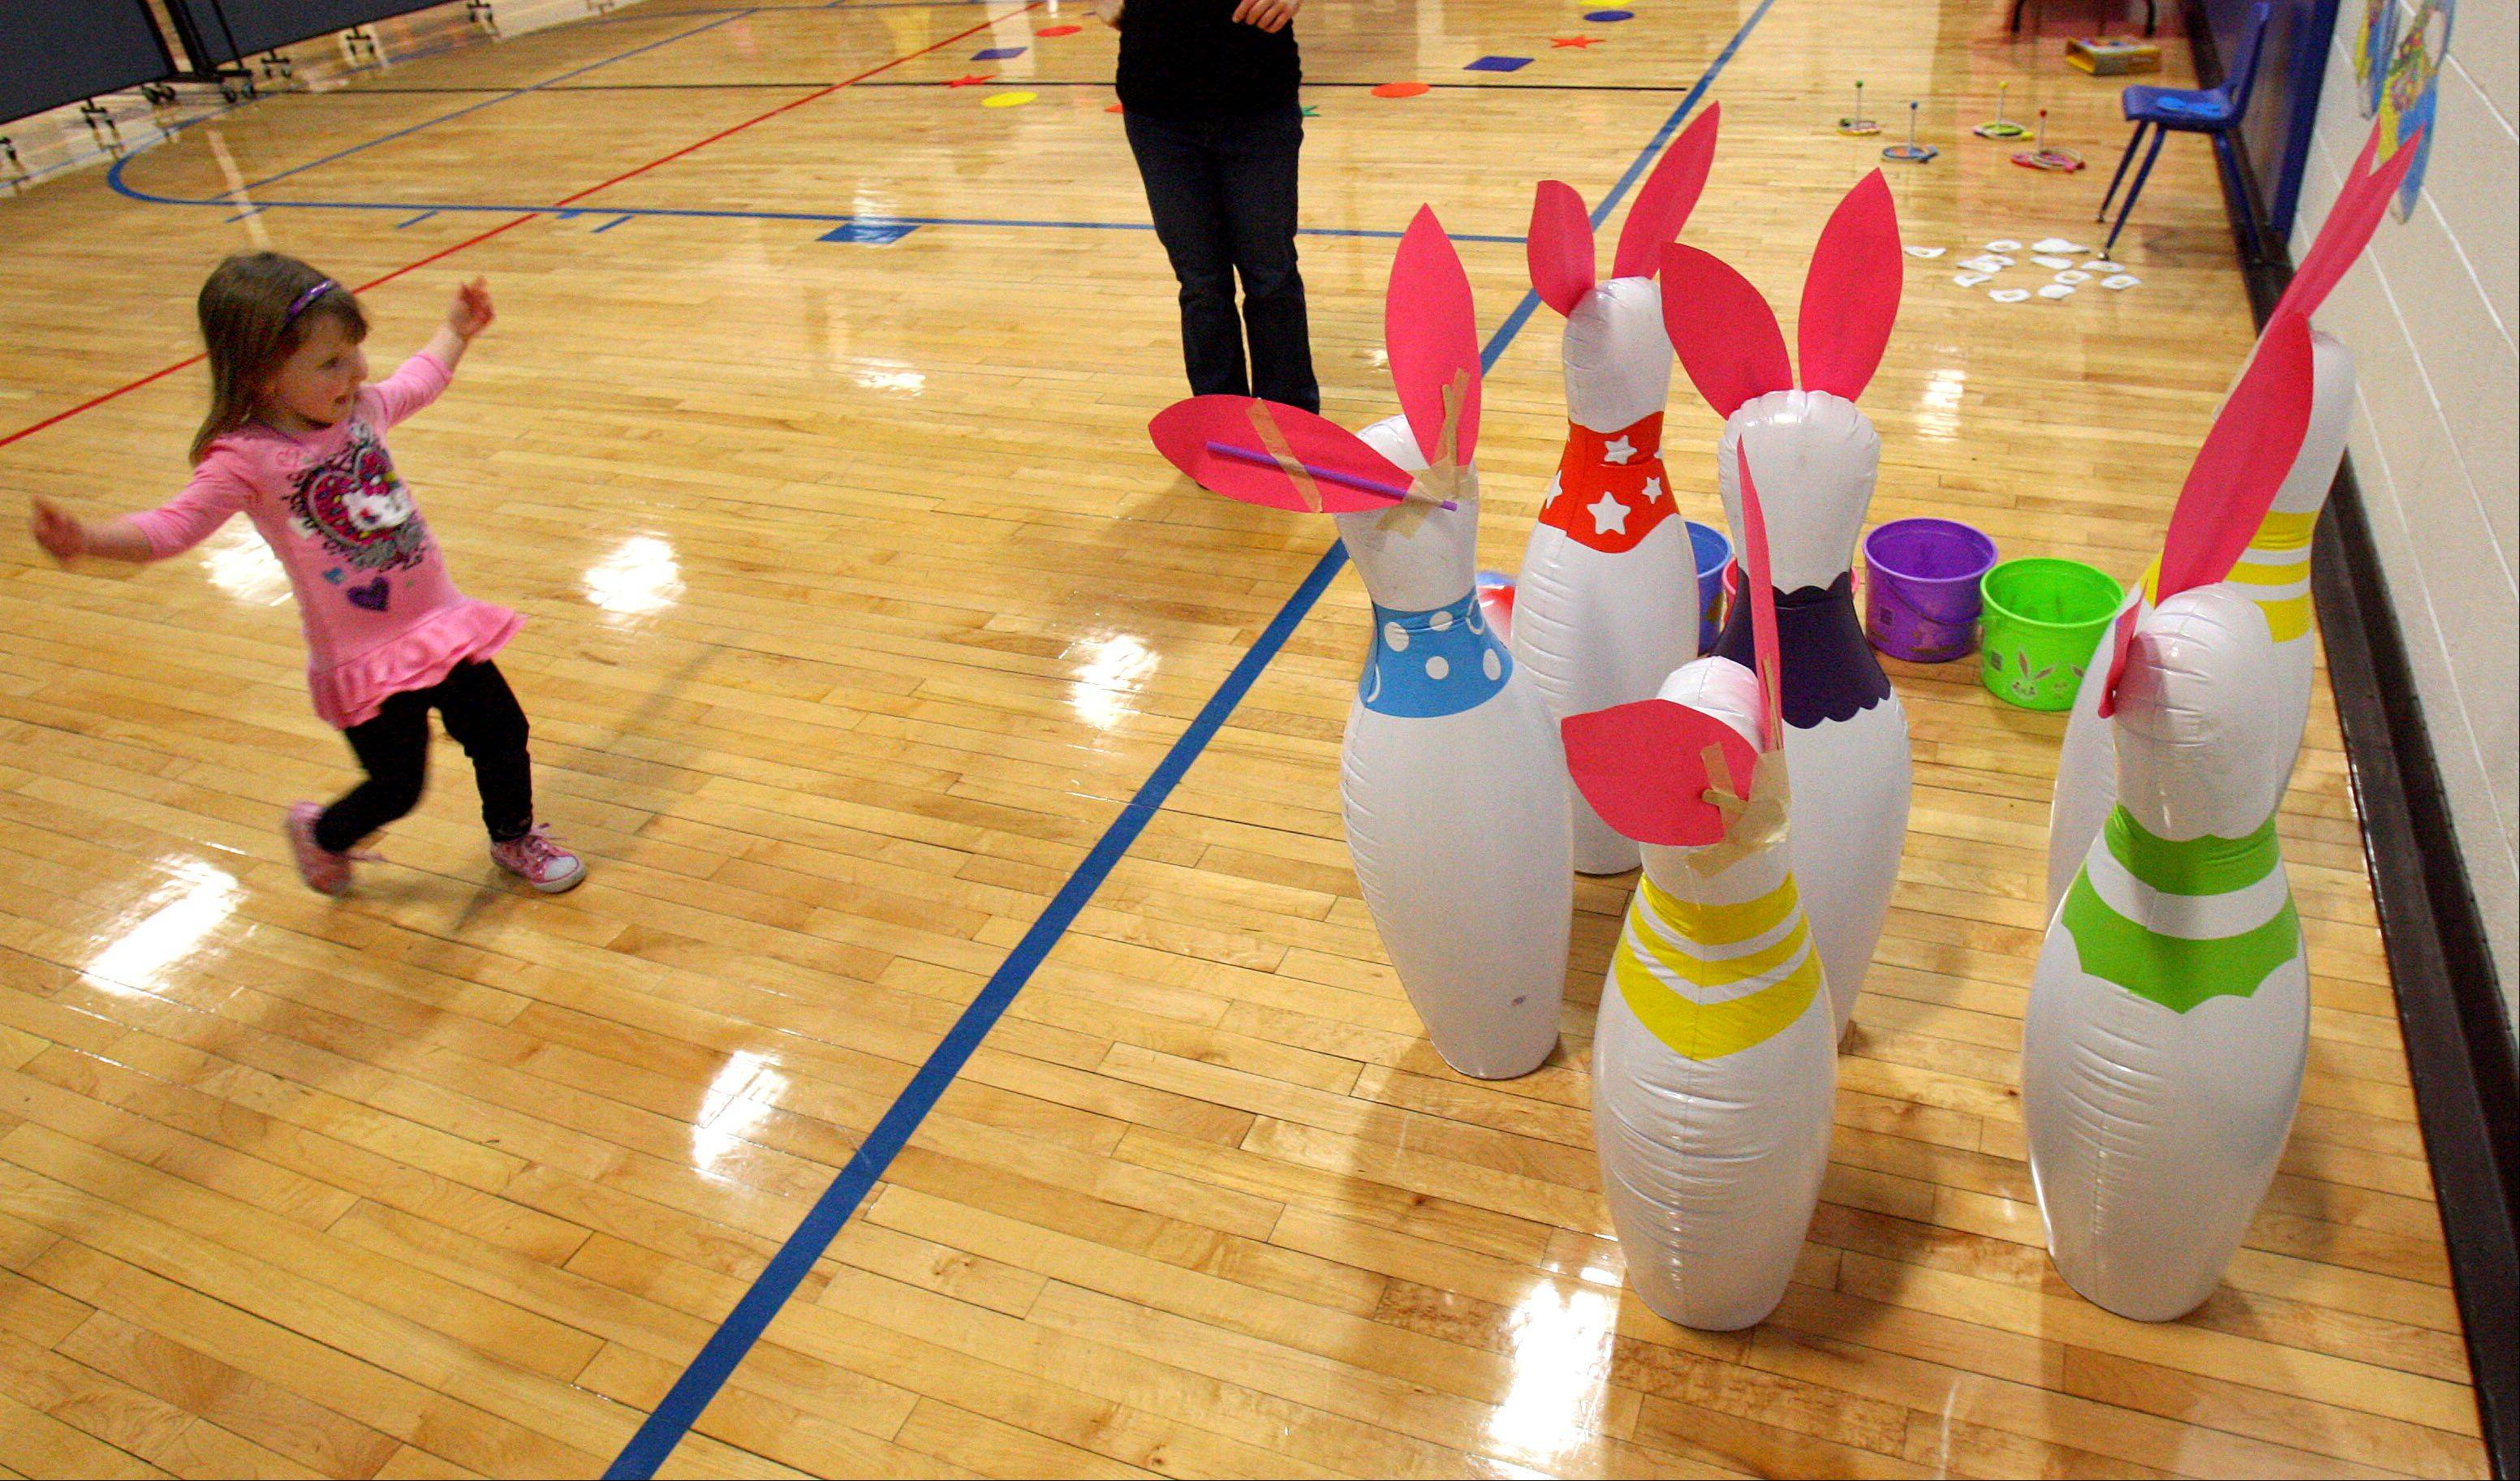 3-year-old Breanne Warren of Spring Grove plays some bunny bowling during Mr. Rabbit's Spring Party at the Robert W. Rolek Community Center in Round Lake Beach Friday.